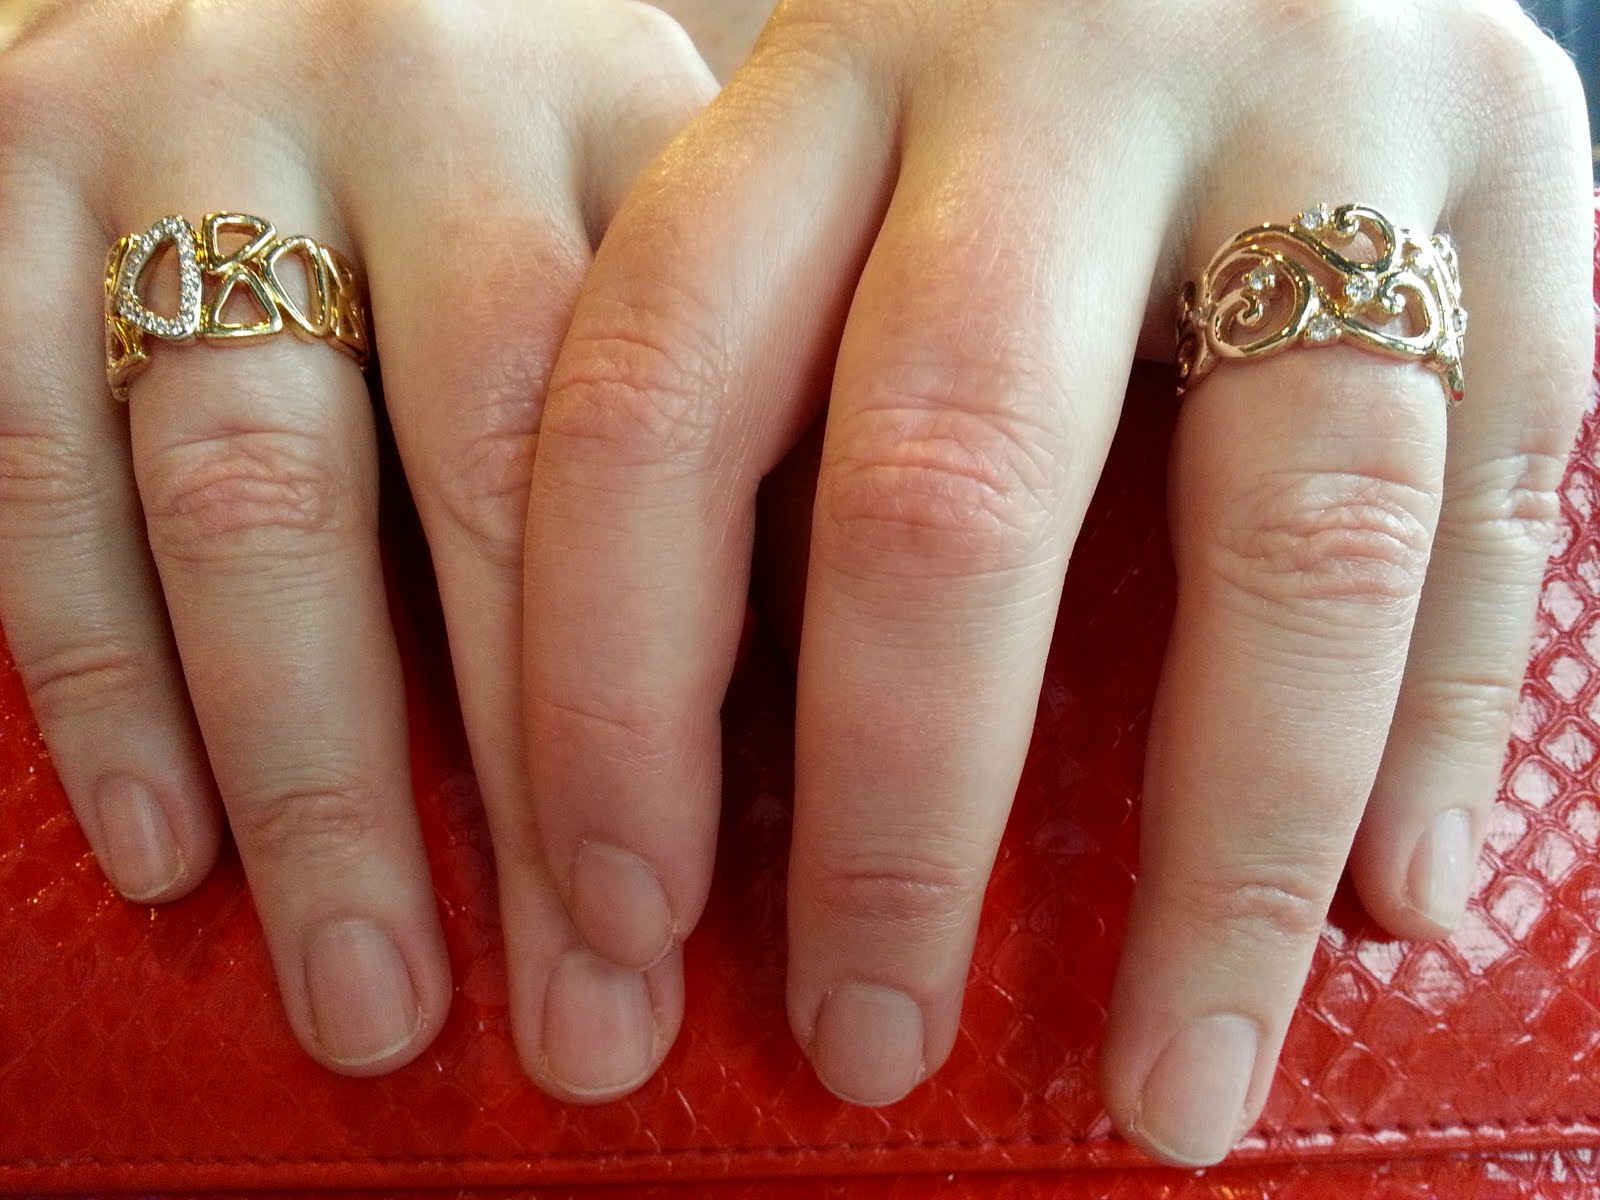 Left Gold And Diamond Ring: Birks; Right Gold And Diamond Ring: Effy